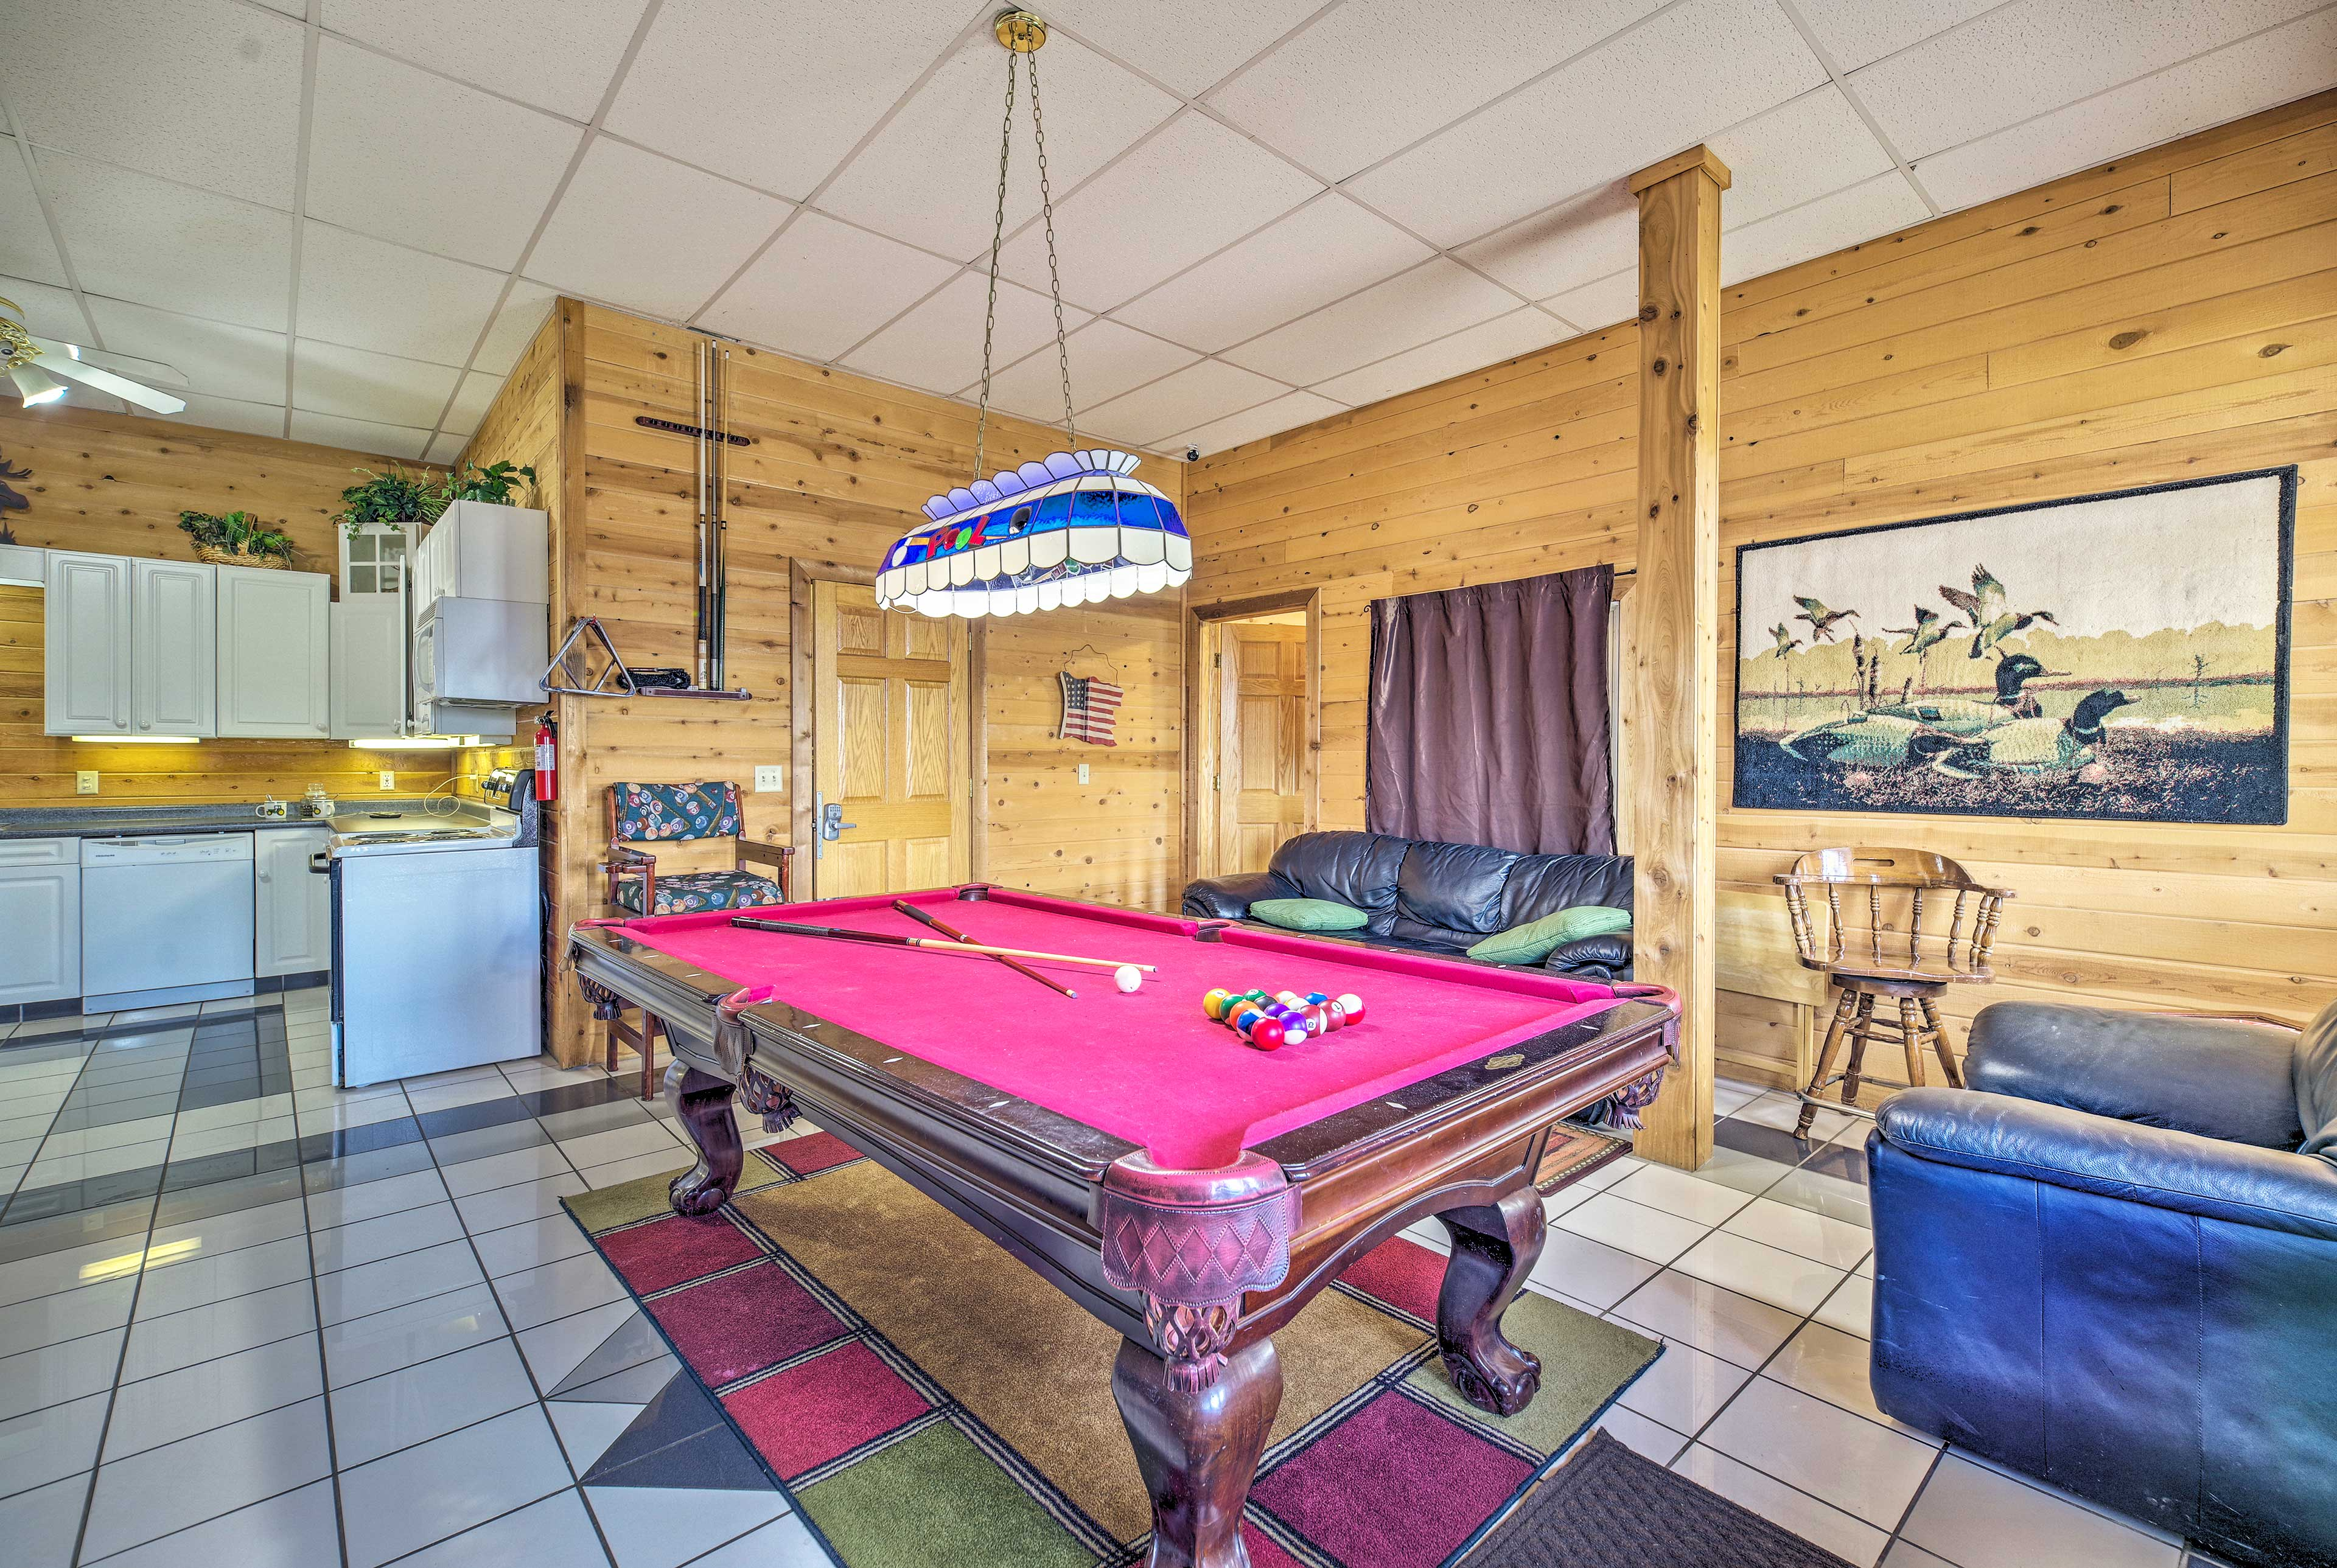 You'll love hanging out in this billiards space.